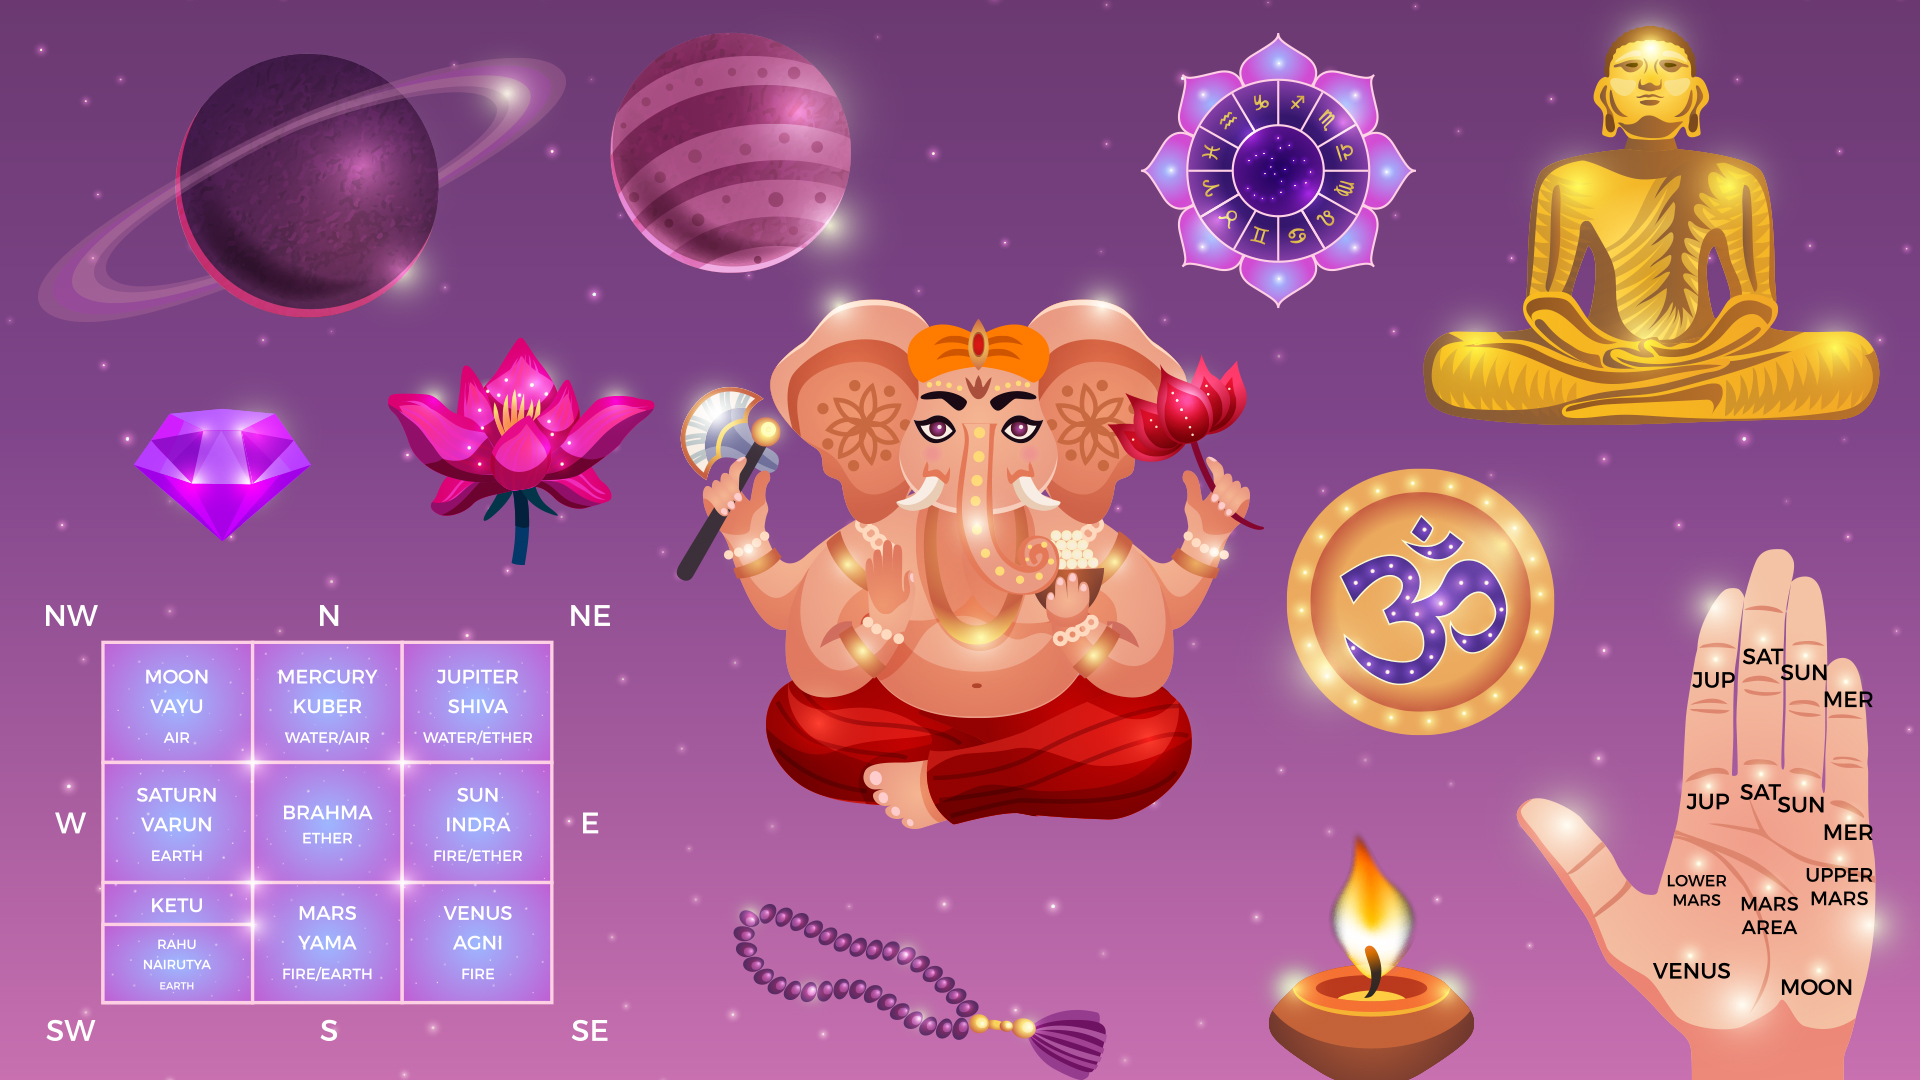 Zodiac signs in Indian (Vedic) Astrology